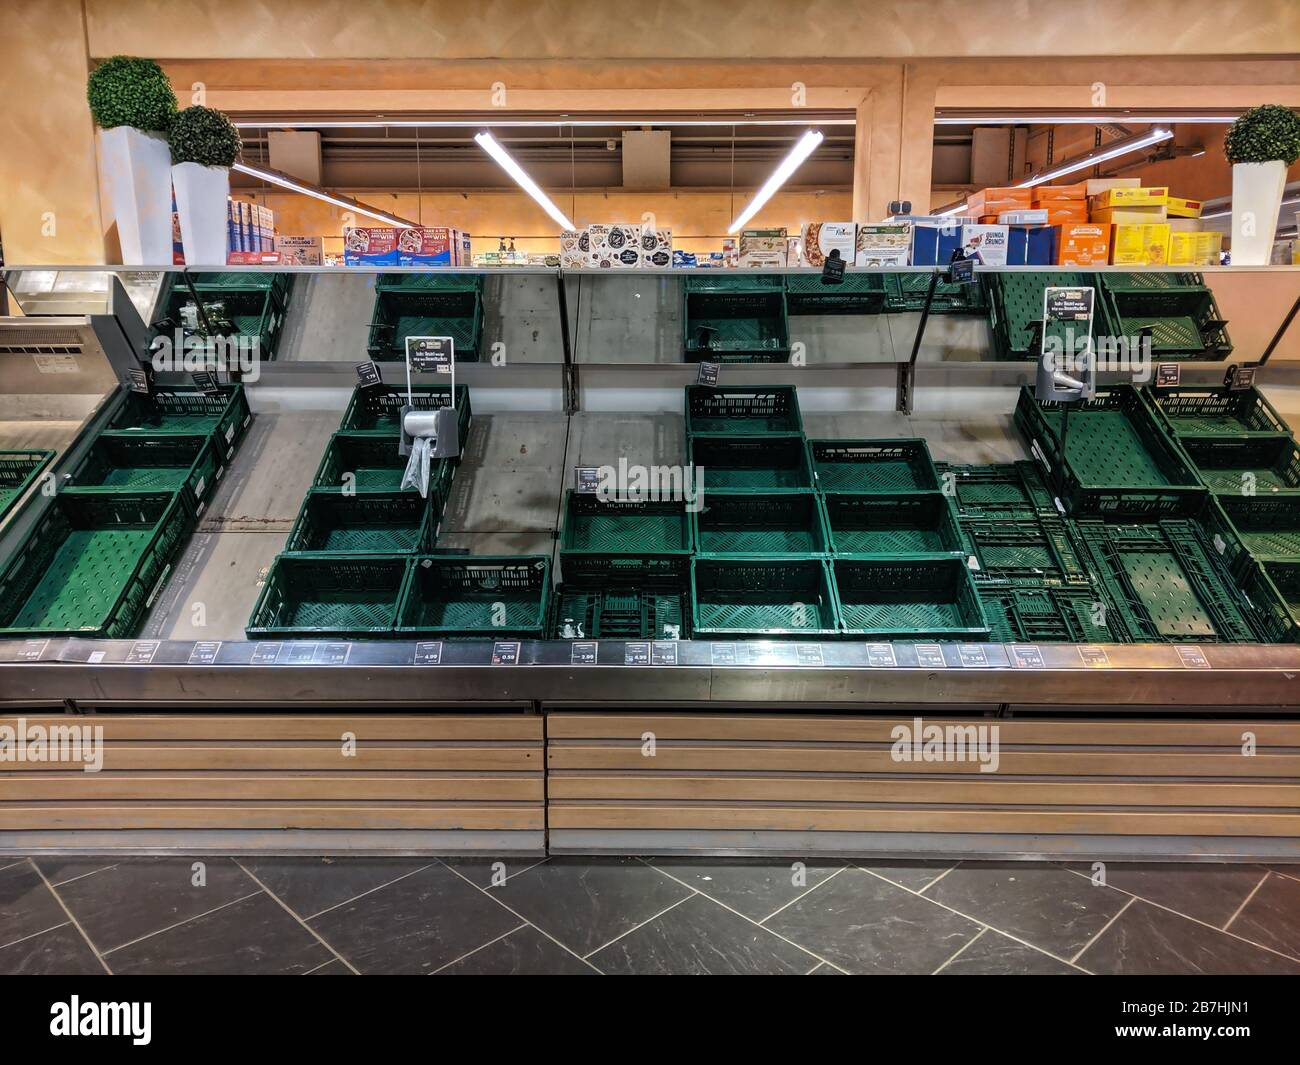 Munich, Bavaria, Germany. 16th Mar, 2020. An example of the empty vegetable shelves seen at supermarkets in Germany, where hoarders (Hamsterkäufer in German) have been panic shopping due to the spread of Covid-19. Critics state that Germany doesn't have supply issues, rather the hoarders are lacking solidarity and buying all the foodstuffs and home supplies, limiting access for normal shoppers and creating artificial shortages. Credit: Sachelle Babbar/ZUMA Wire/Alamy Live News Stock Photo